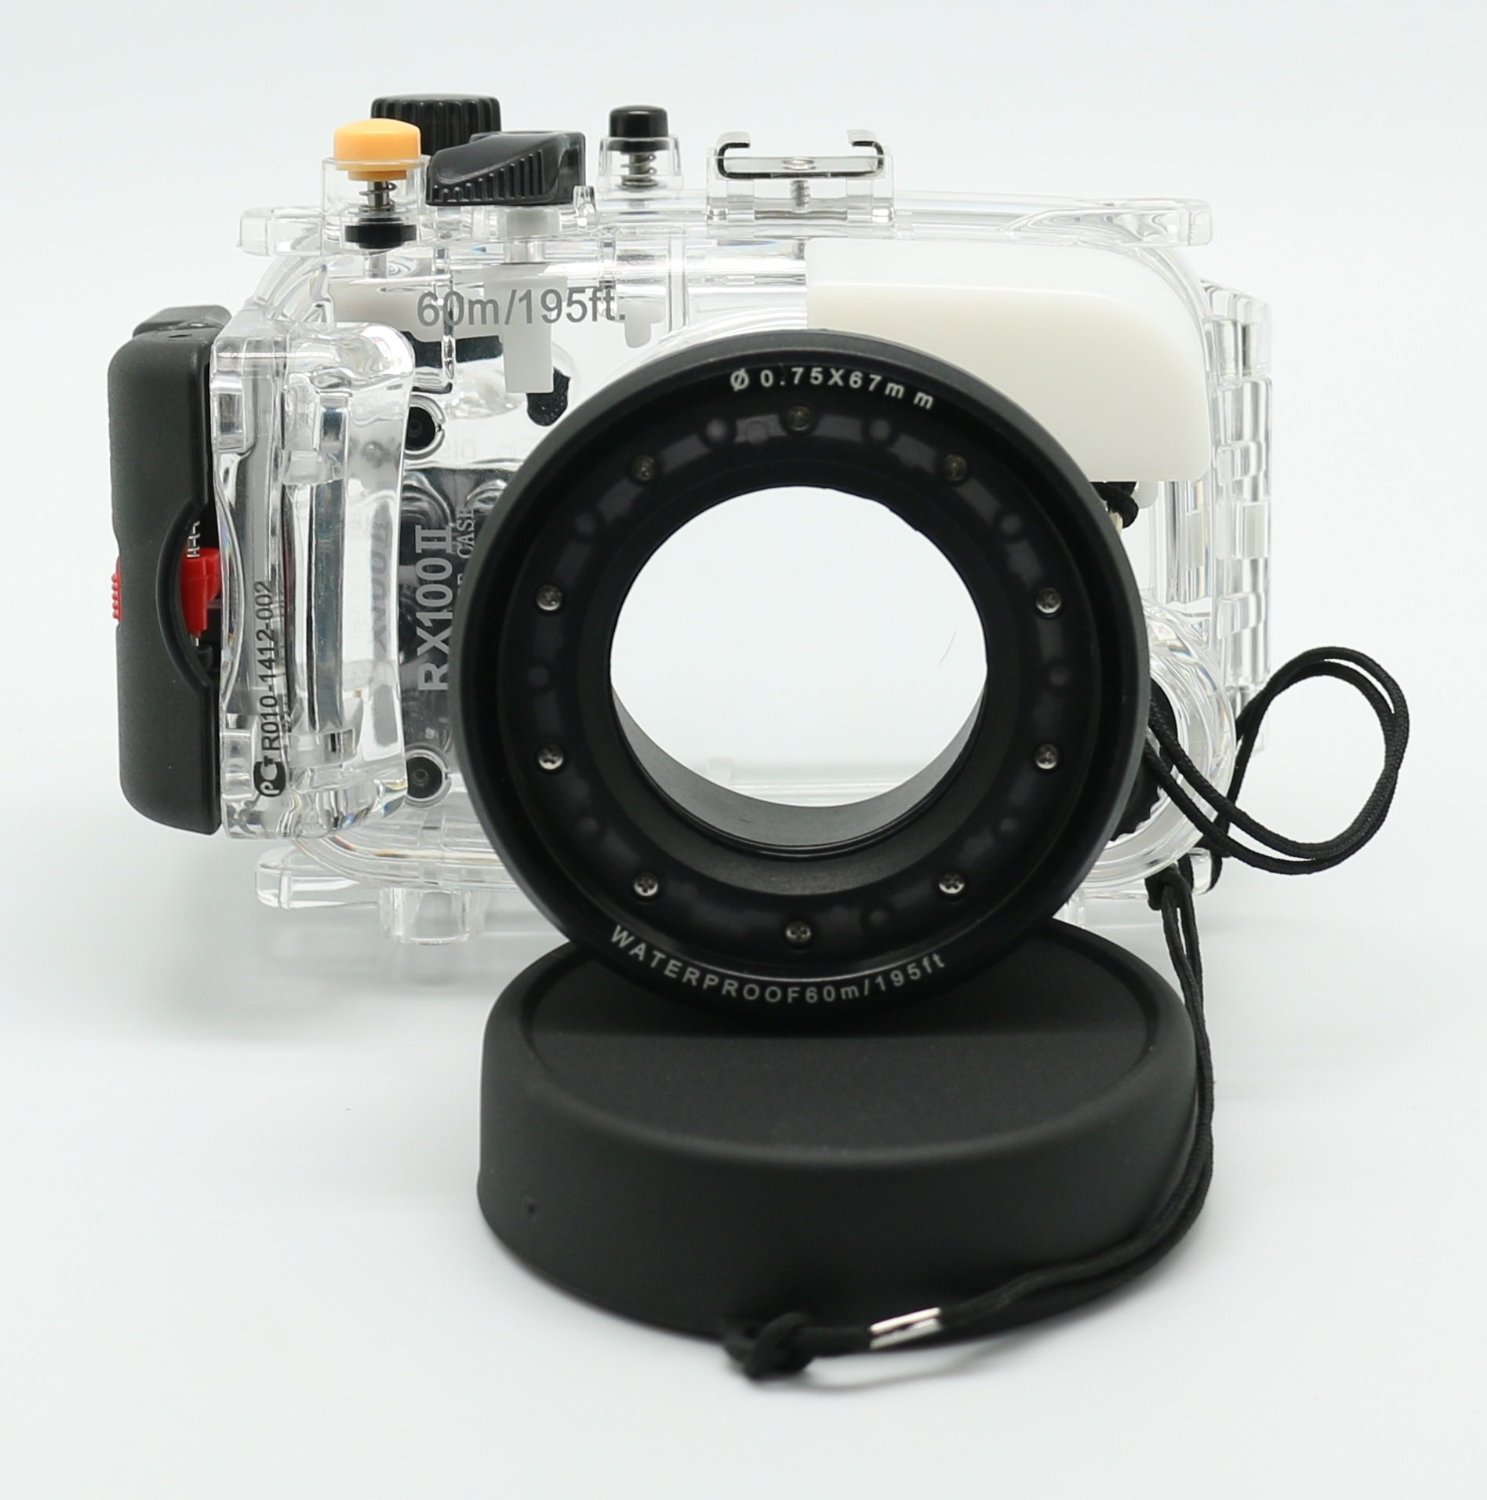 60M/195ft Waterproof Underwater Camera Housing Diving Case for SONY DSC-RX100 ii RX100M2 RX100 mark2 цены